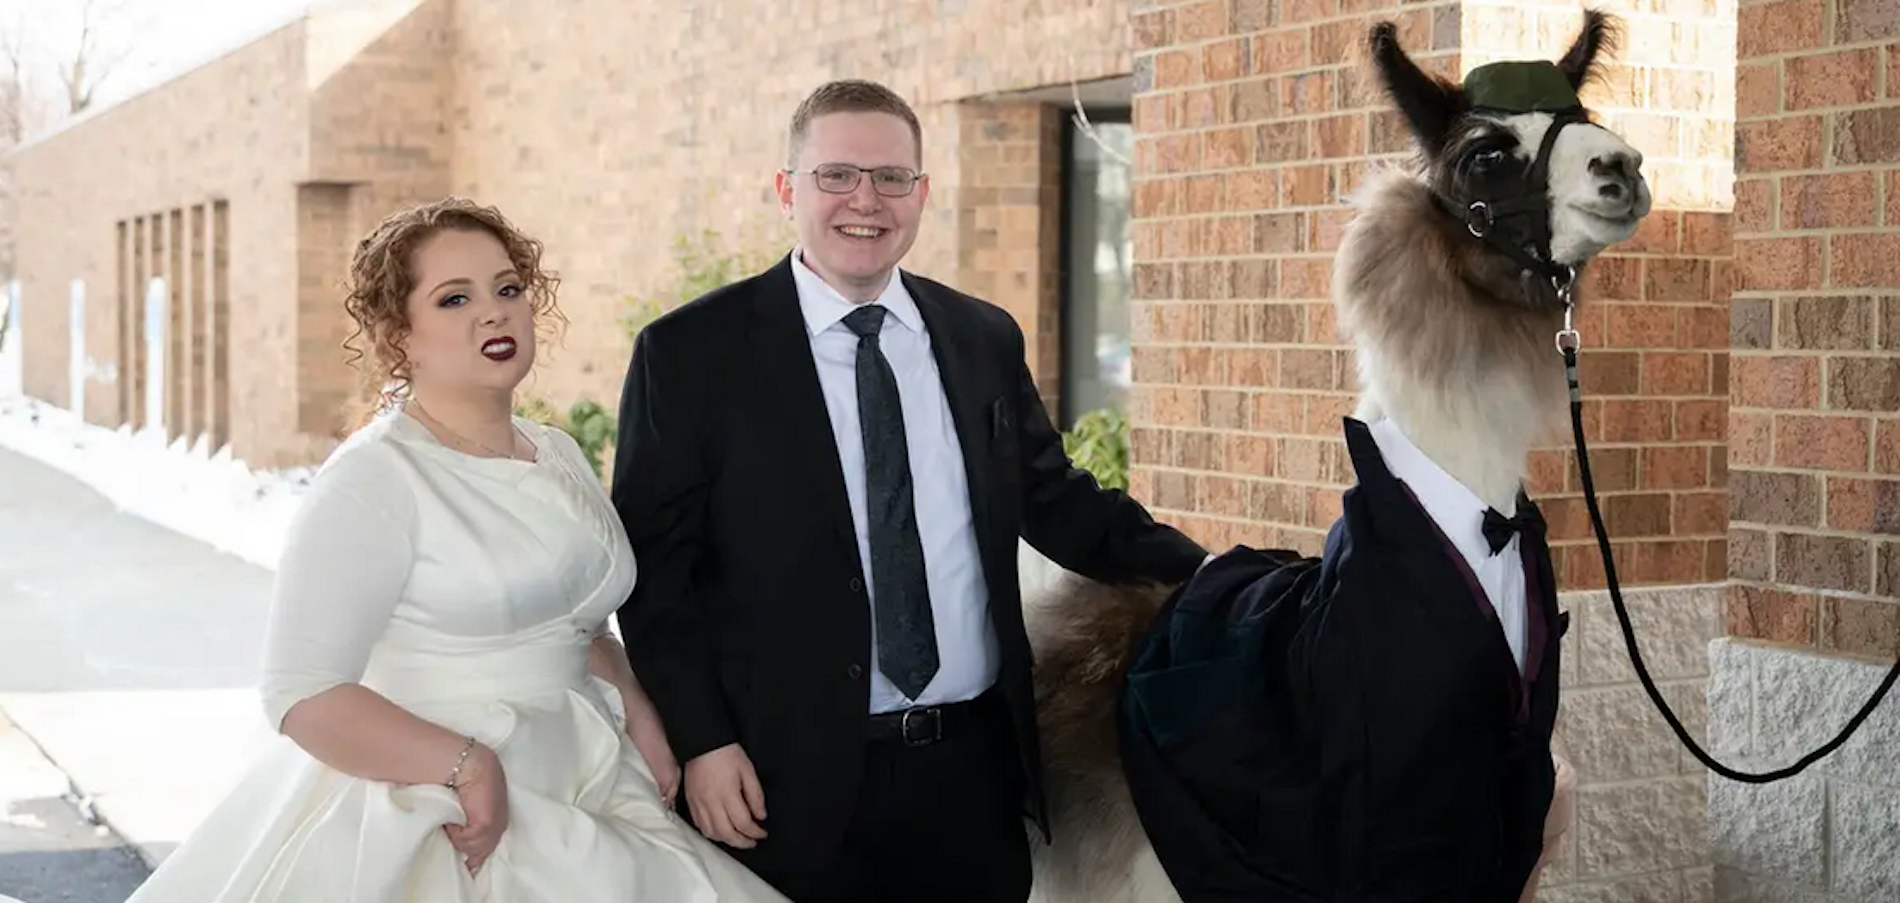 Frum Man Brings Llama to His Sister's Wedding & Other Orthodox Jews in the News